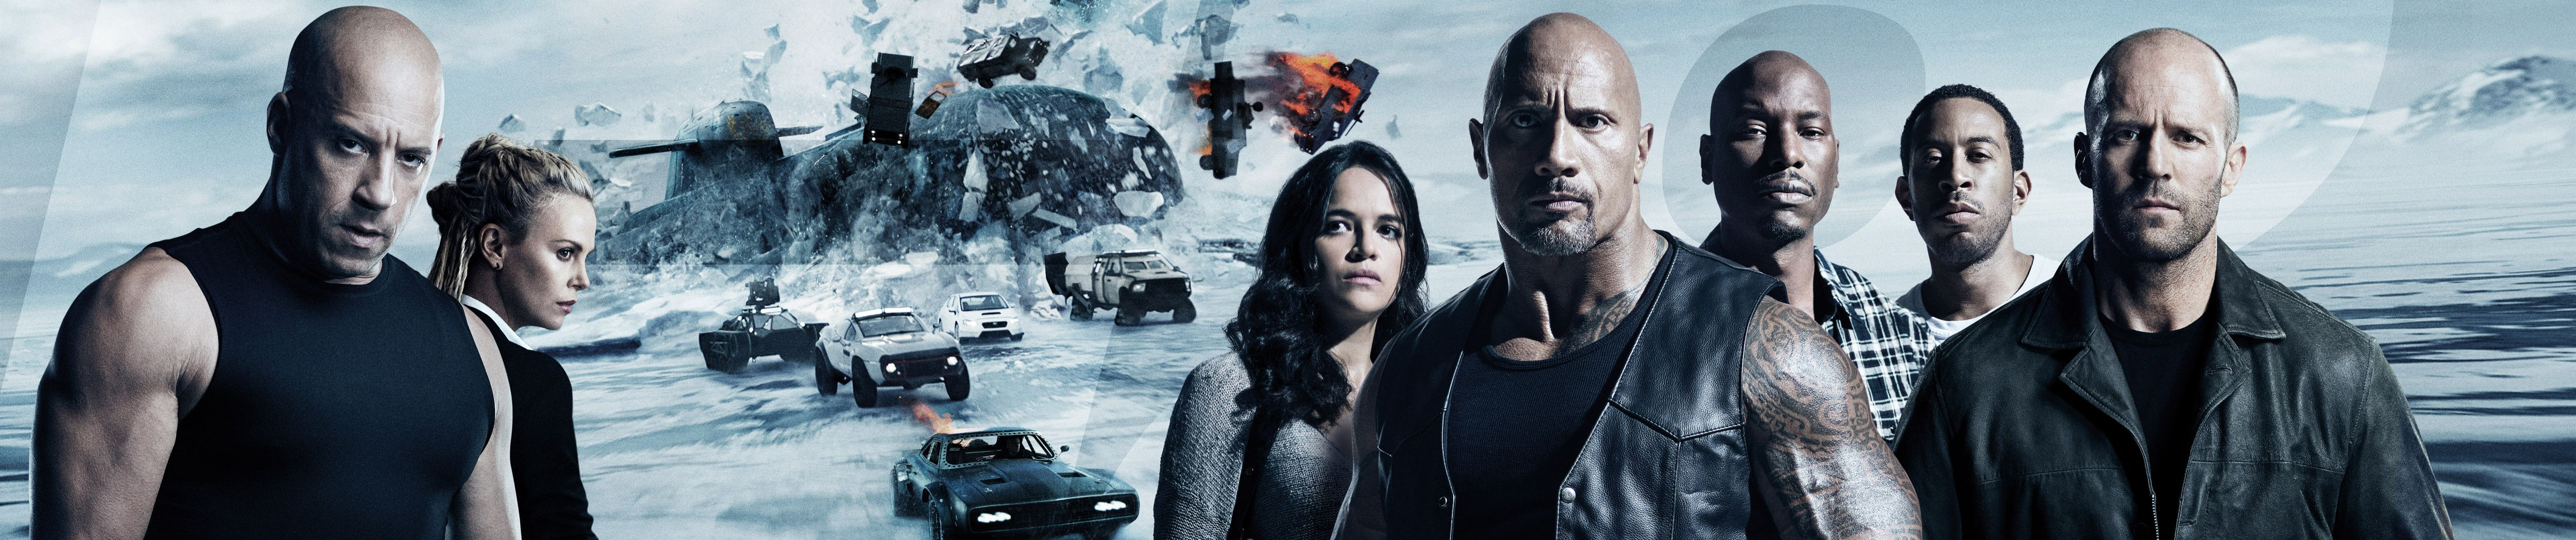 hey mama fast and furious 8 song download mp3